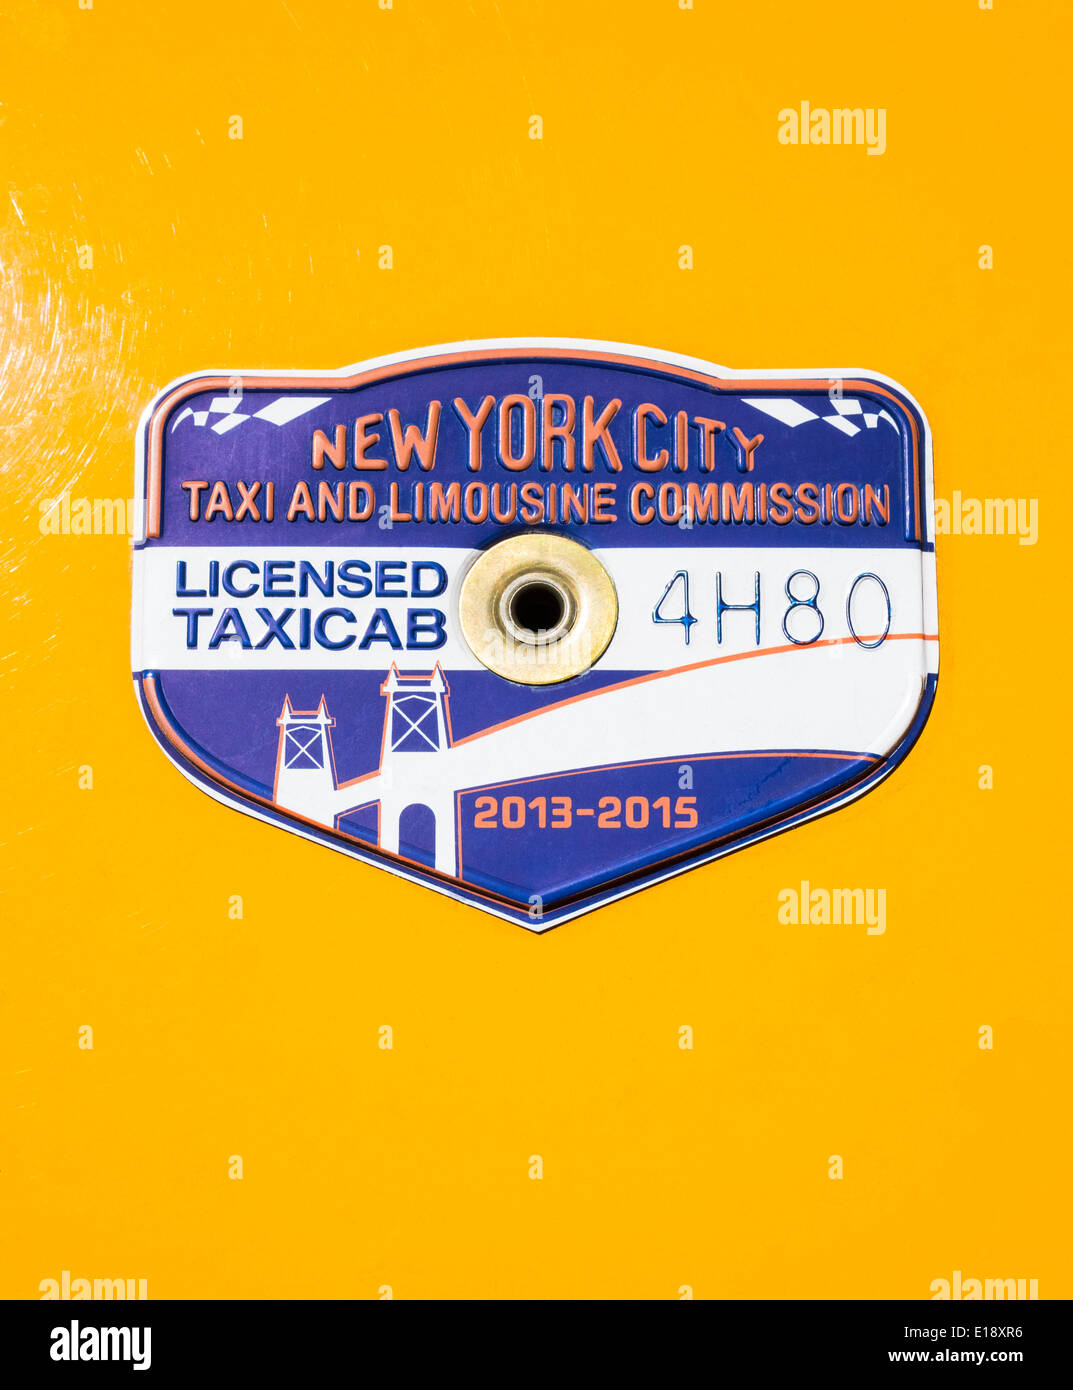 New York City taxicab medallion on yellow cab for 2013-2015 - Stock Image